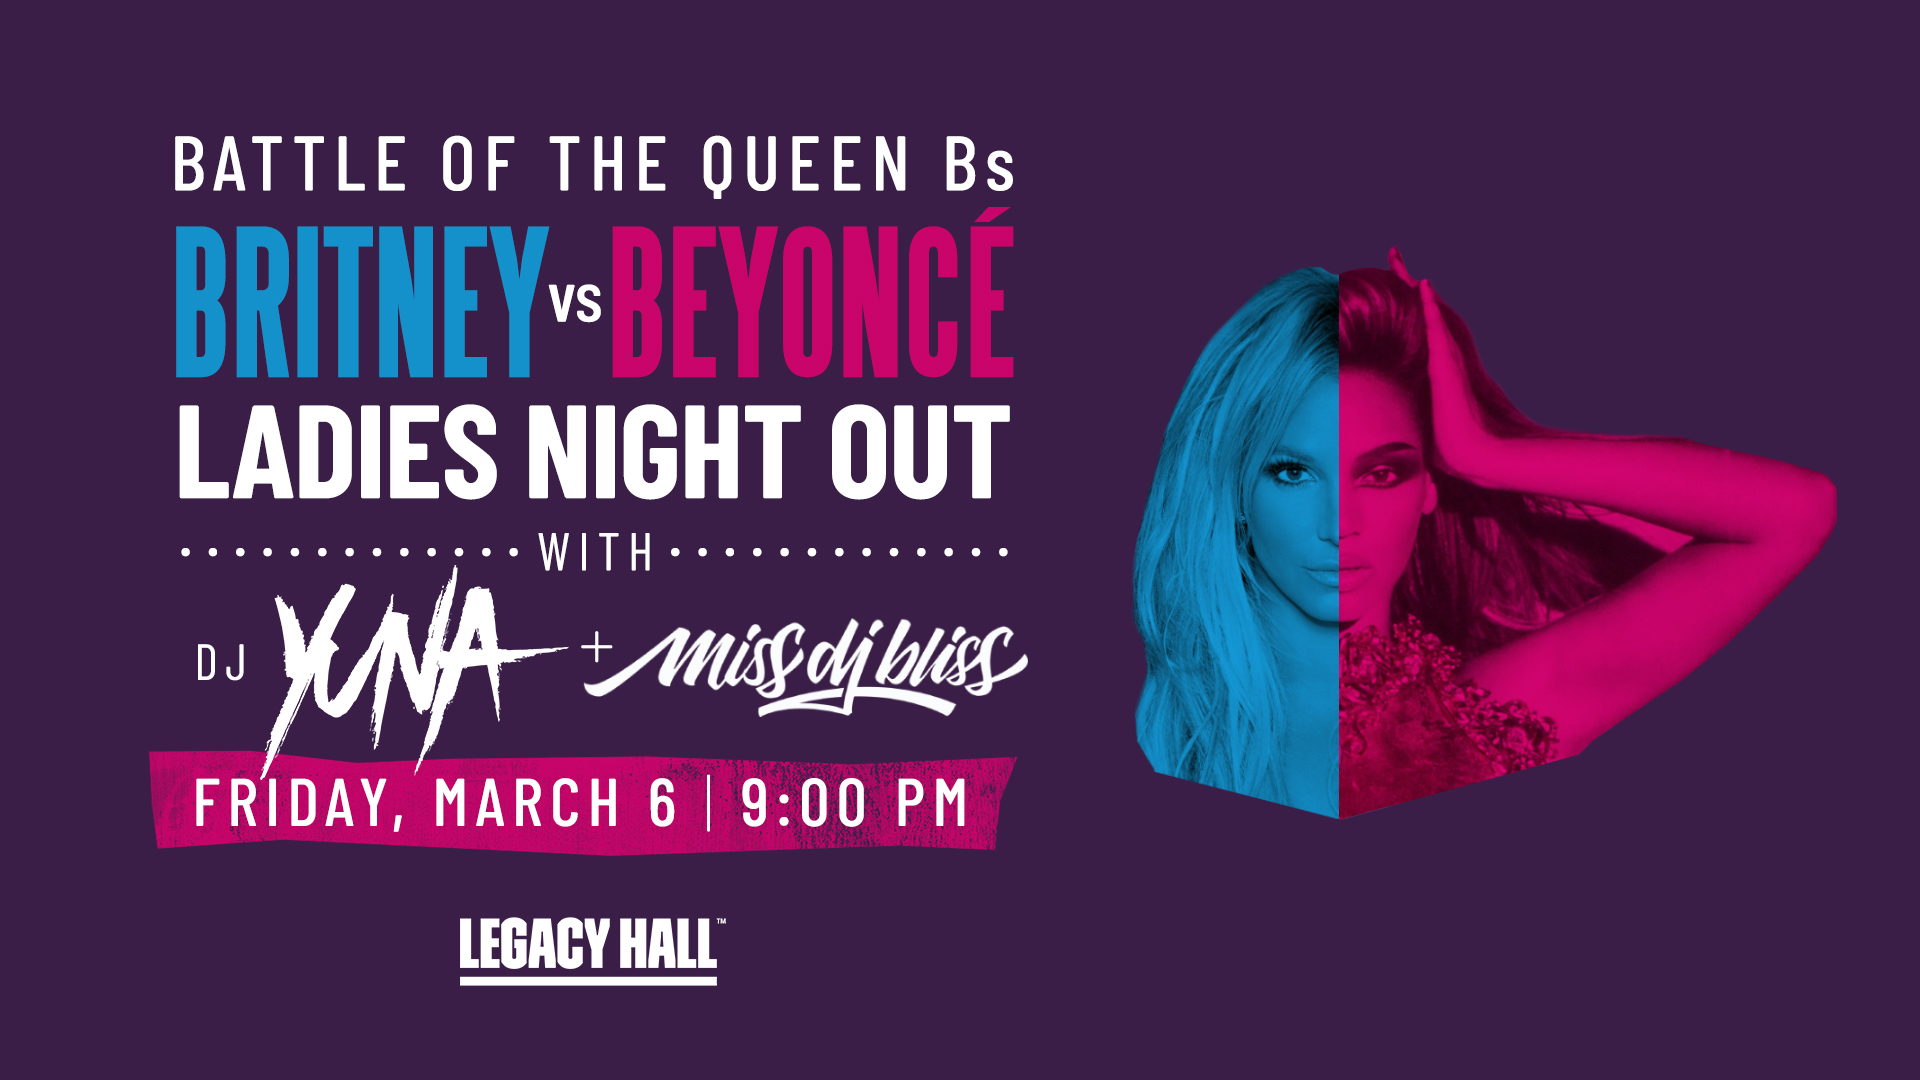 Promo image of Britney vs. Beyonce Ladies Night Out